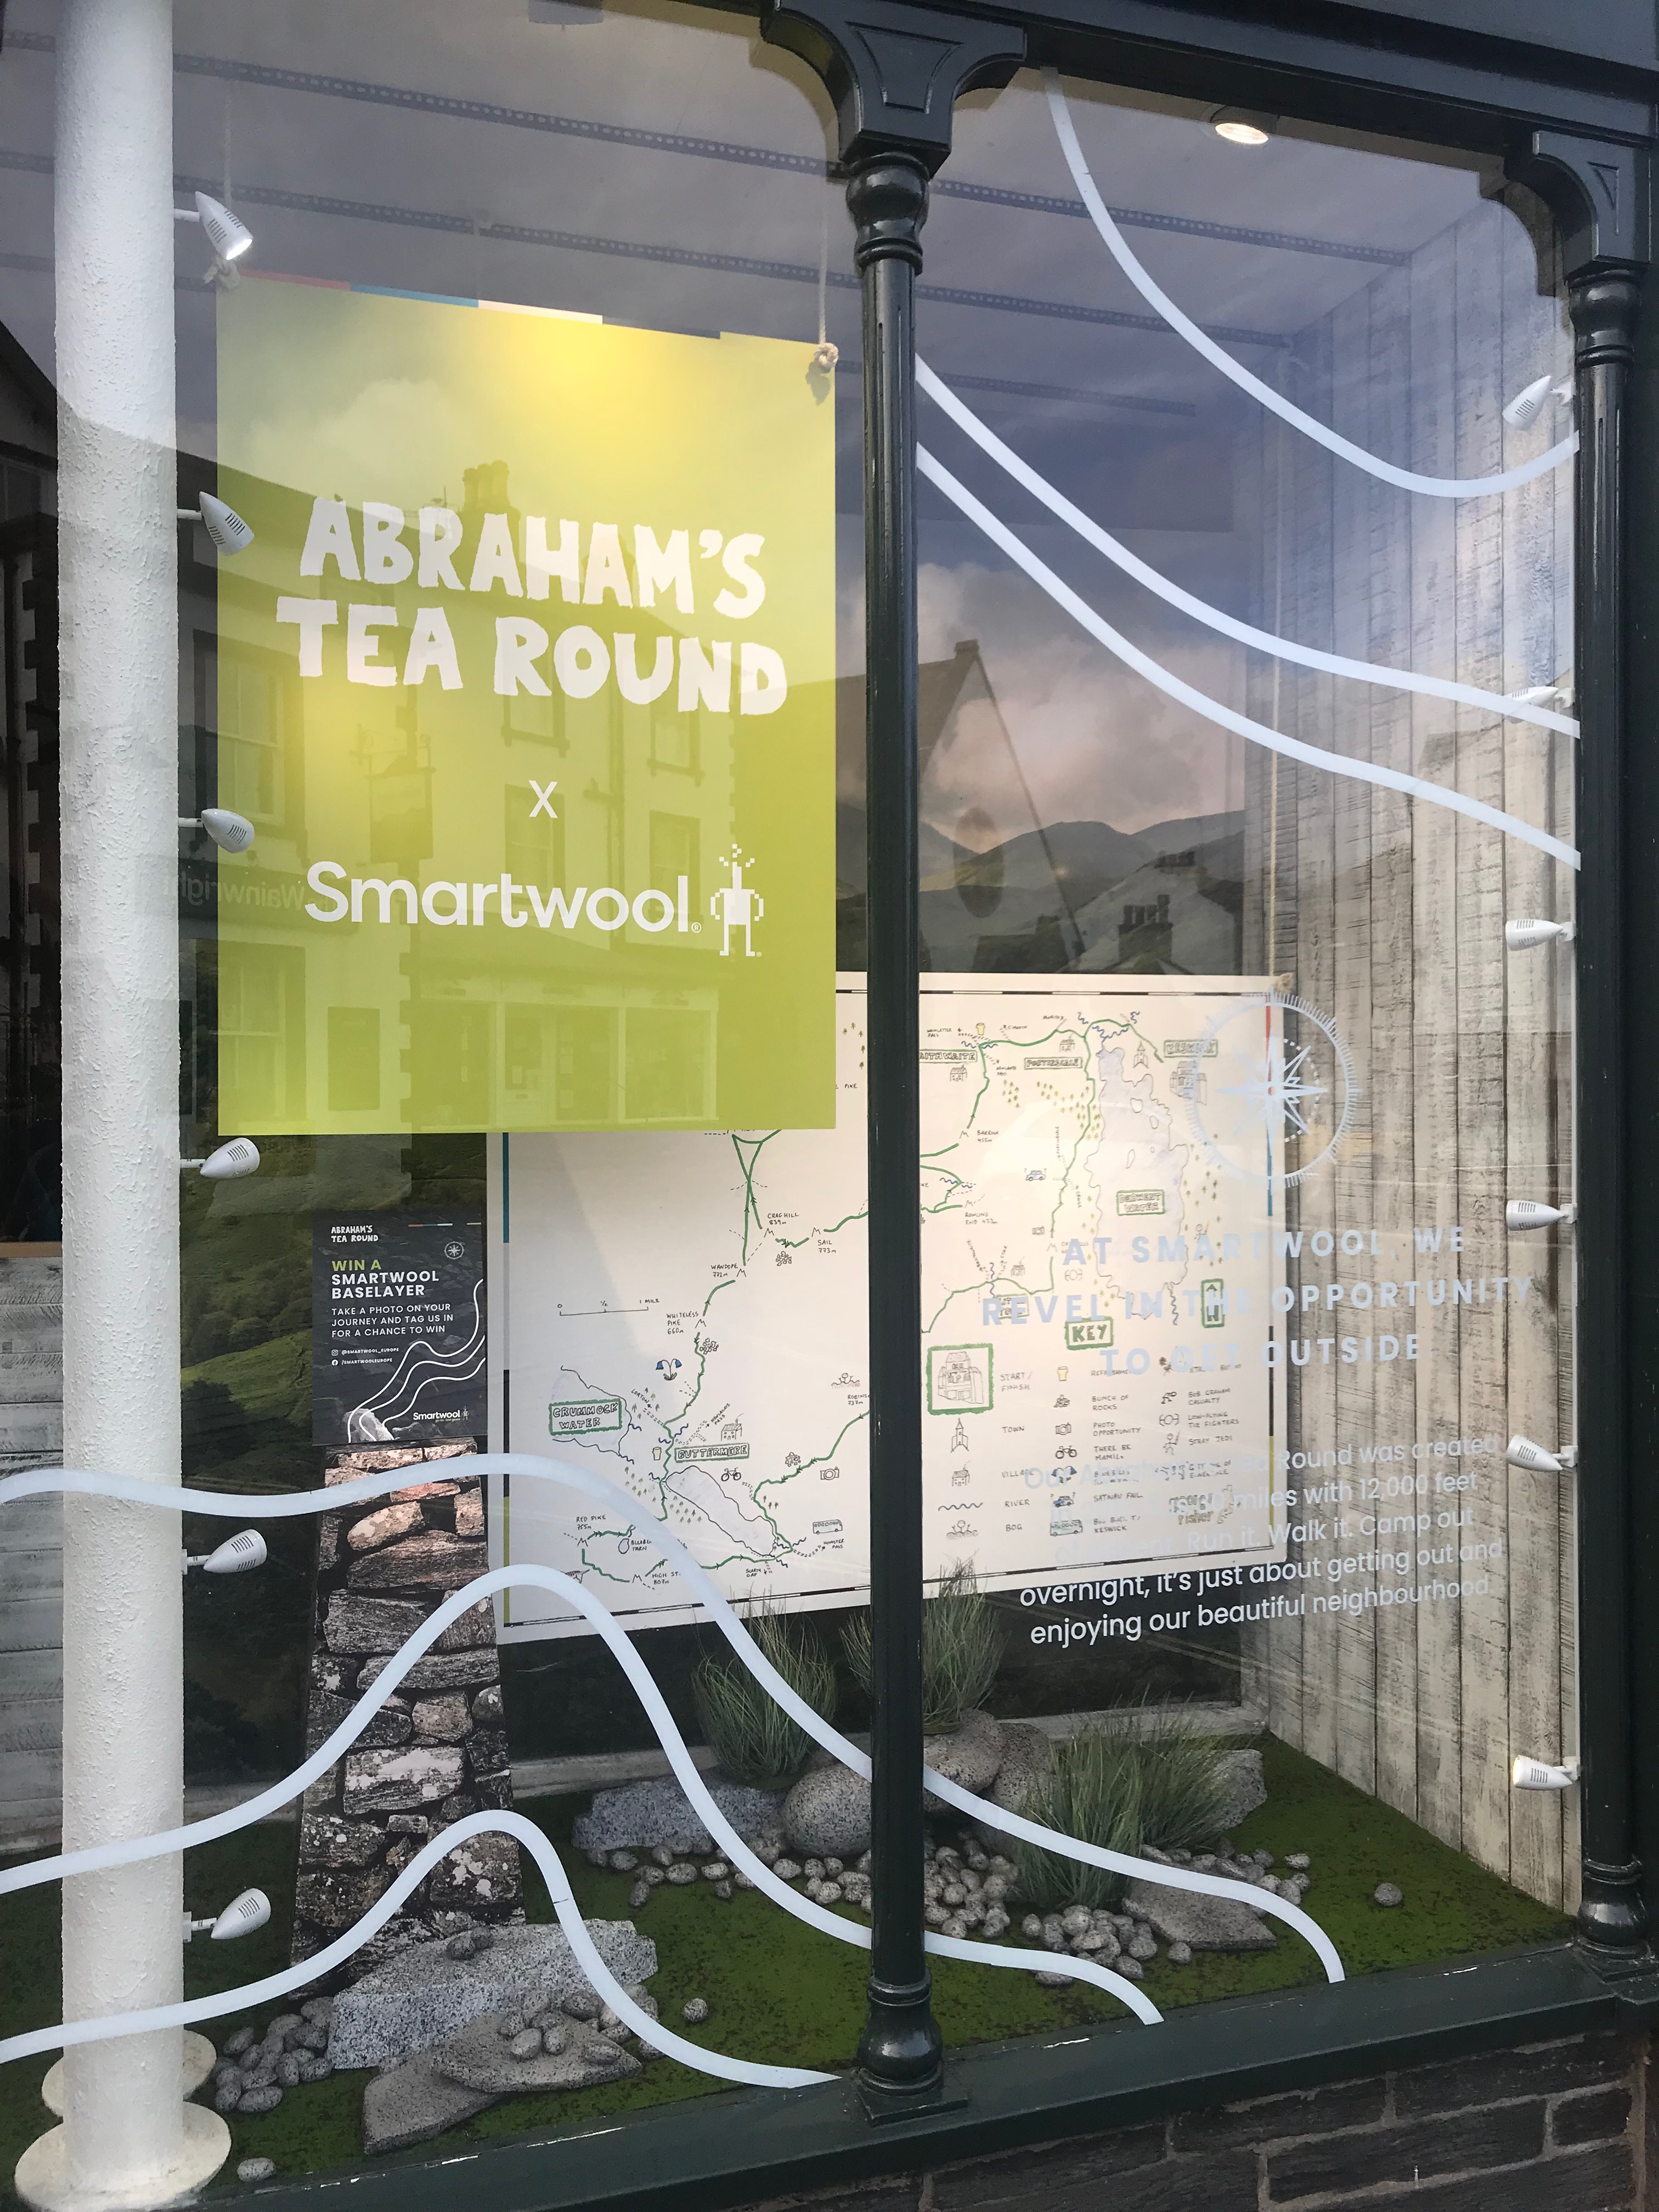 Image for article Abraham's Tea Round x Smartwool